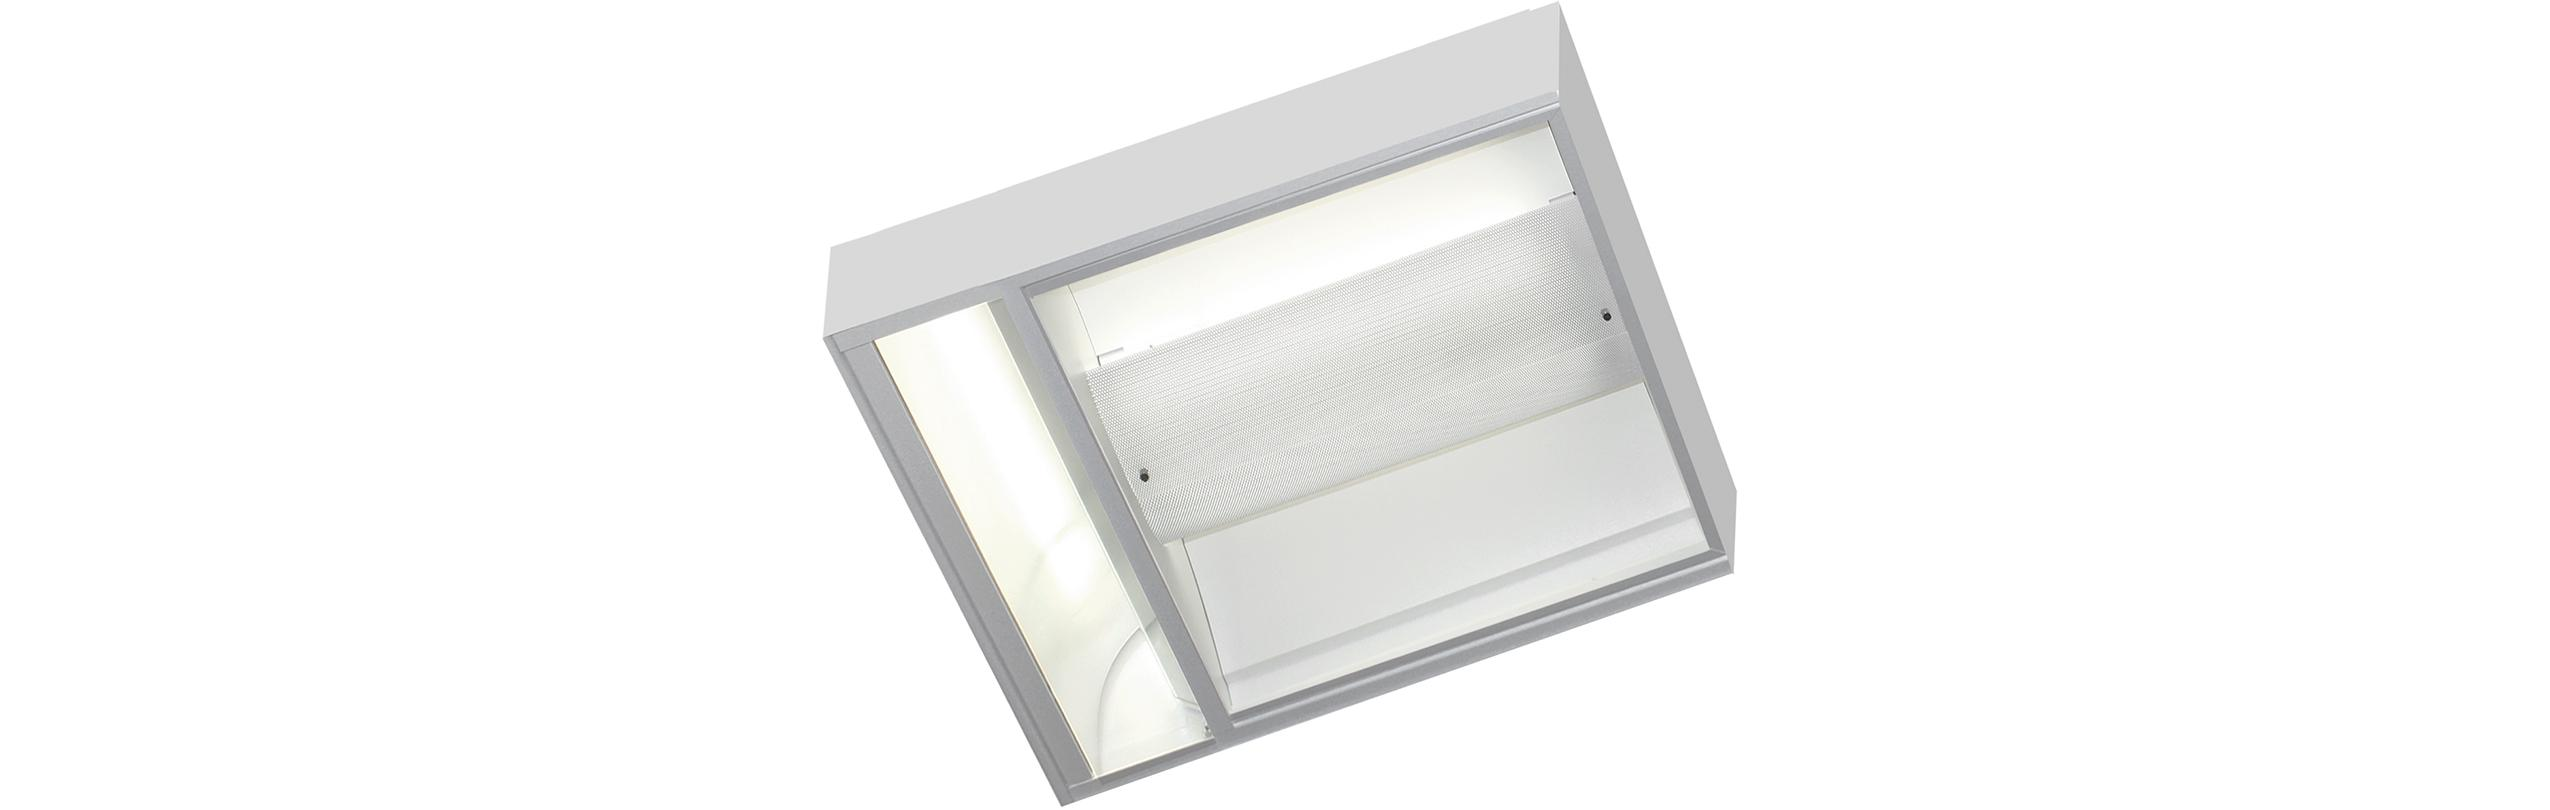 2x2 Reading Ambient LED Light